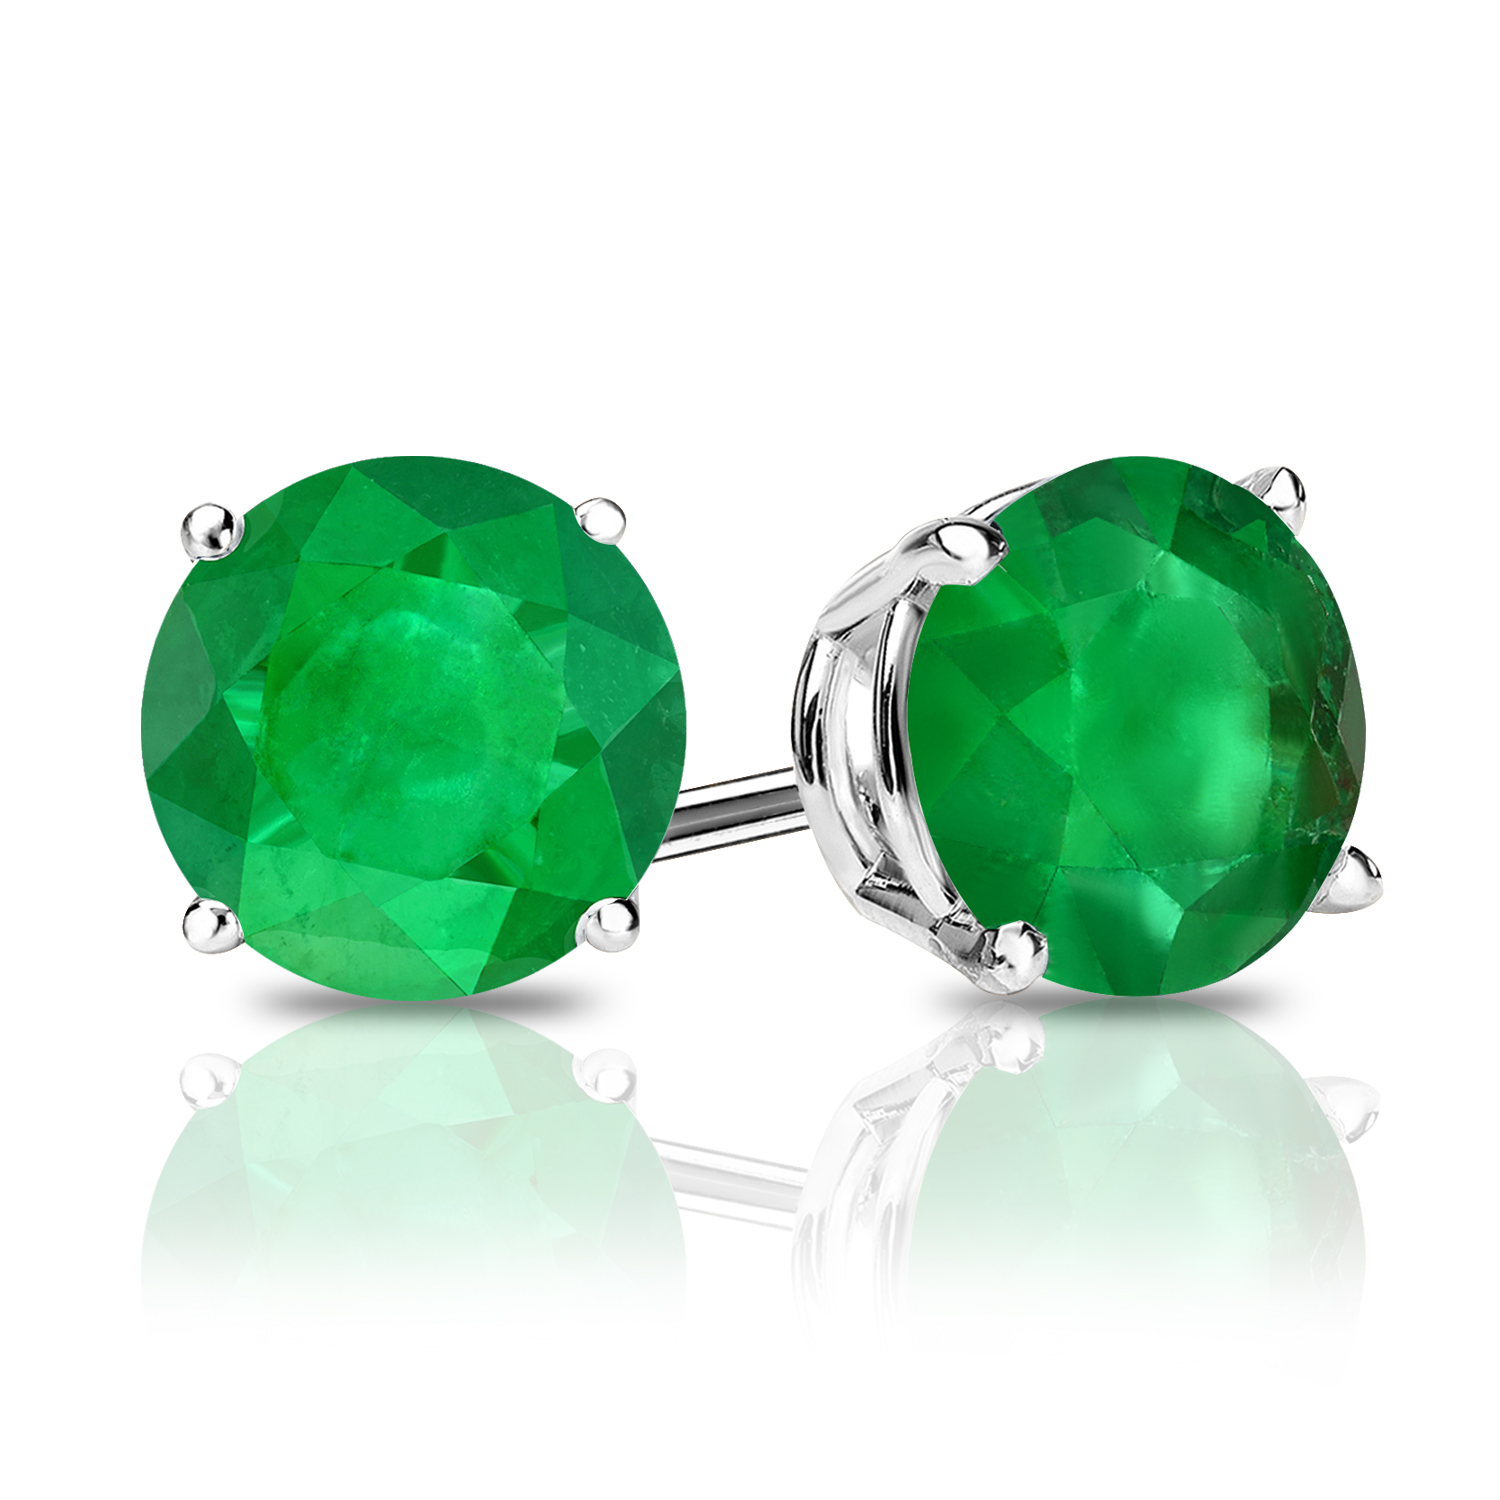 Certified 0.75 cttw Round Green Emerald Gemstone Stud Earrings in 14k White Gold 4-Prong Basket (Green, AAA)